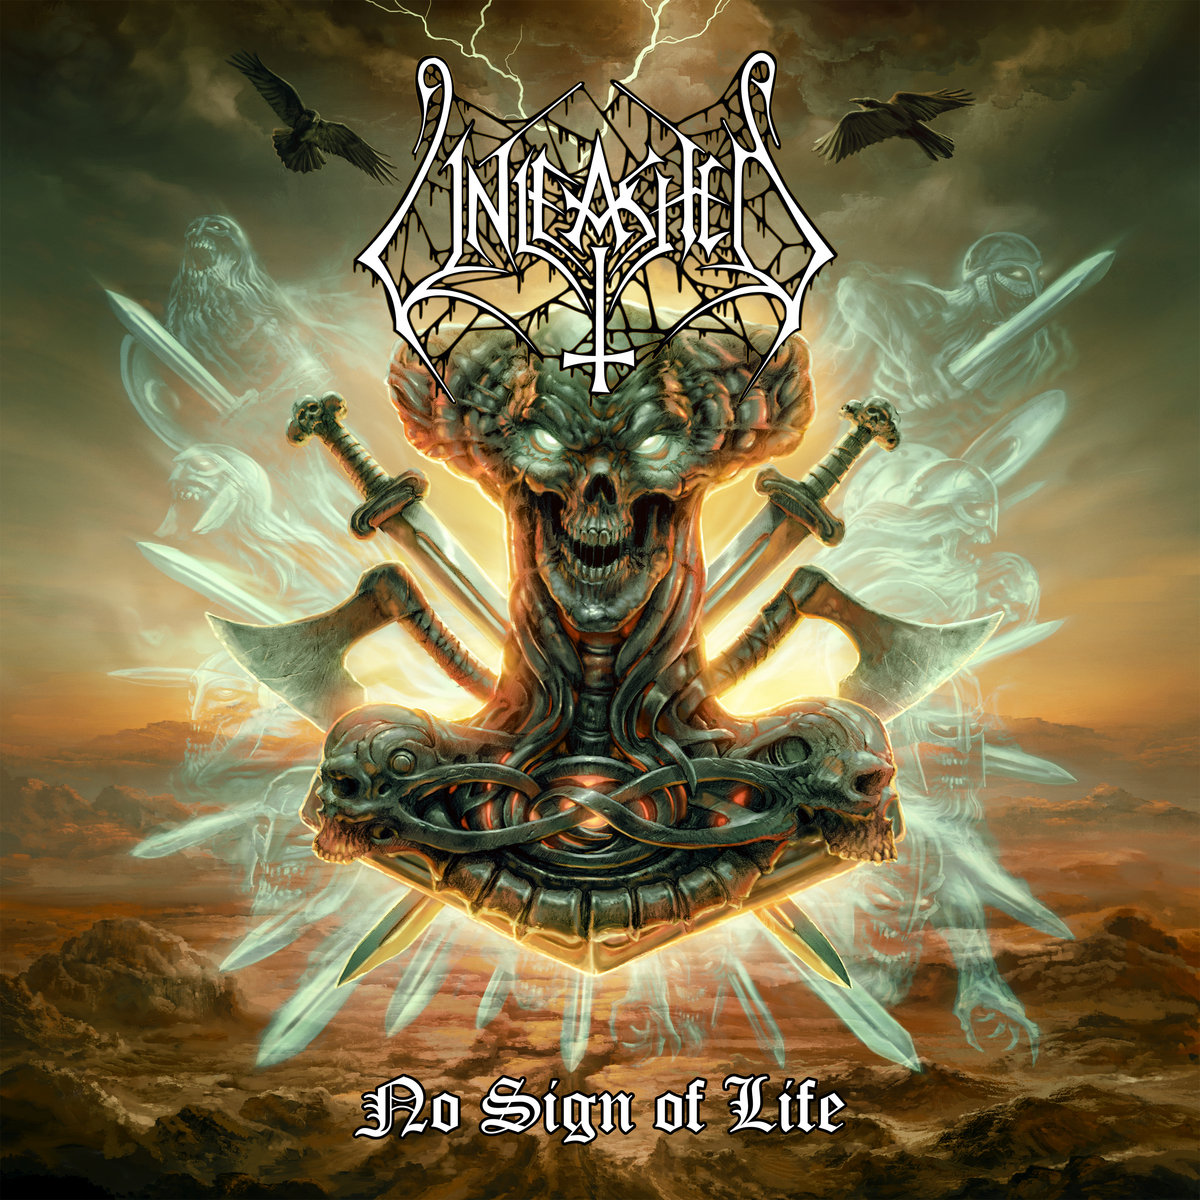 unleashed no sing of life